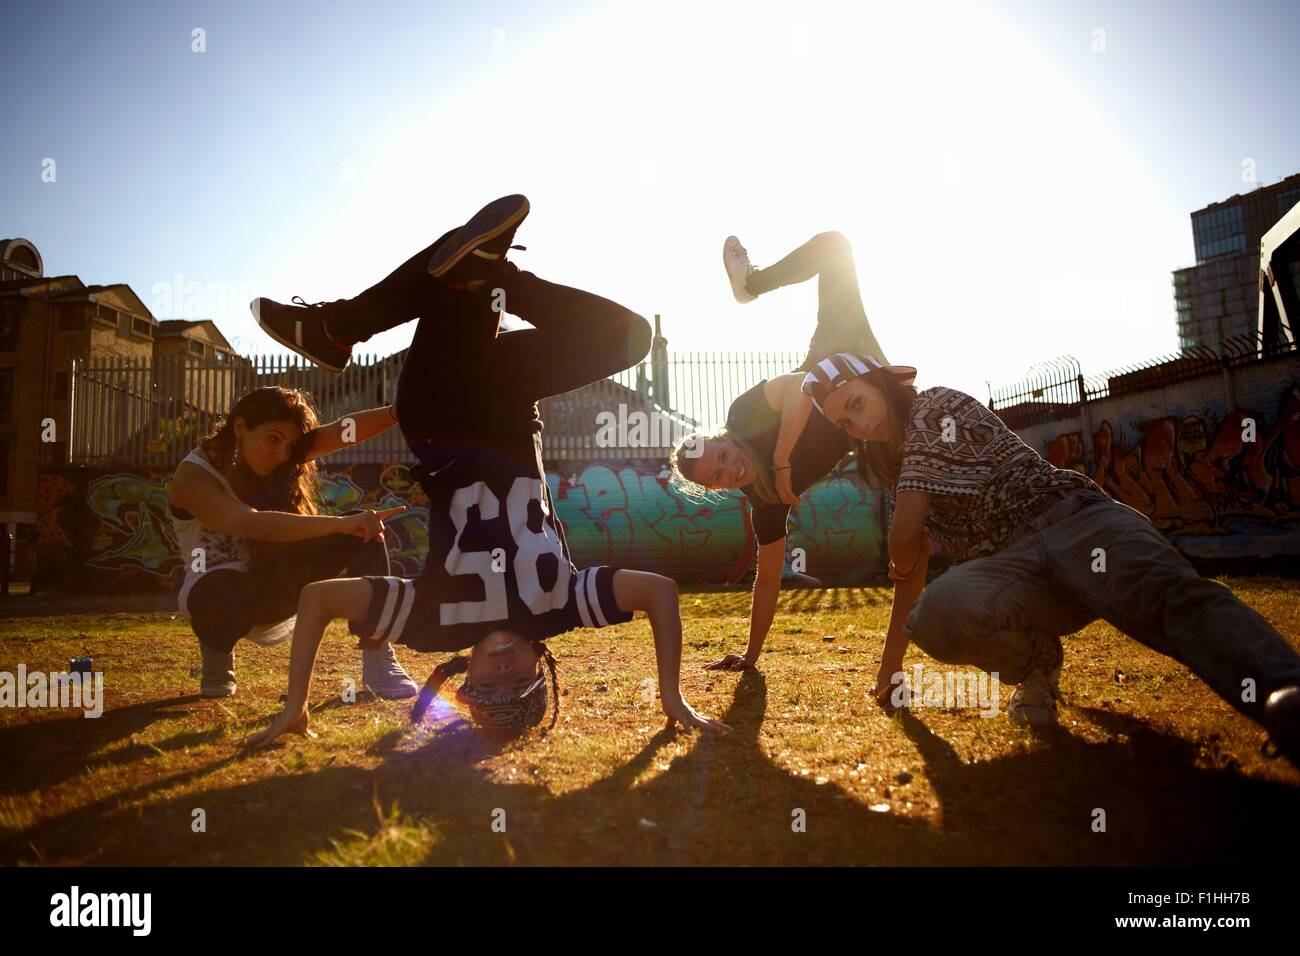 Freeze Frame Stock Photos & Freeze Frame Stock Images - Alamy